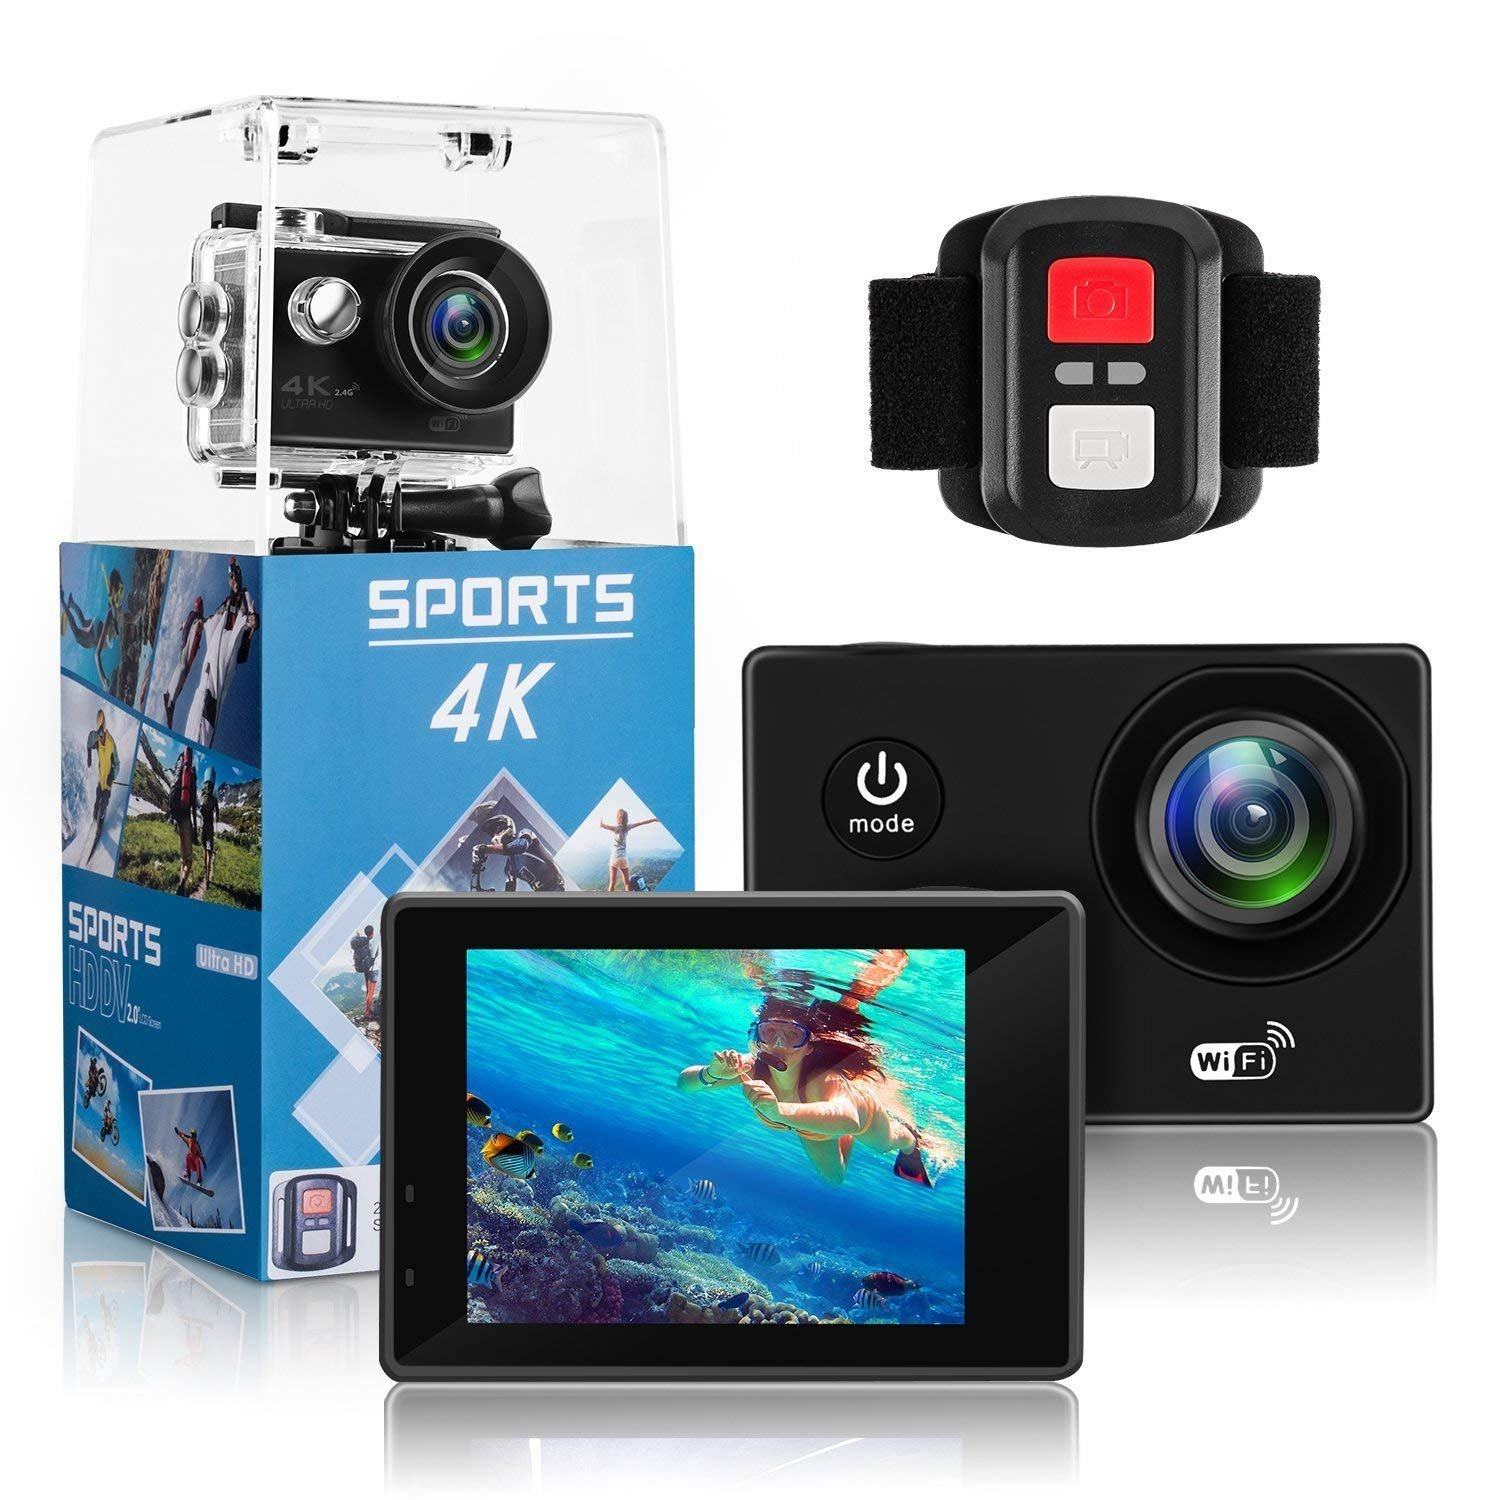 4K Action Camera,Wewdigi HE9000 4K Sports Action Camera Ultra HD 30m Waterproof WiFi 16MP DV Camcorder 170 Degree Wide 2 inch LCD Screen/Remote Control/4k/HD 19 Mounting Kits-Black (4k) by Wewdigi